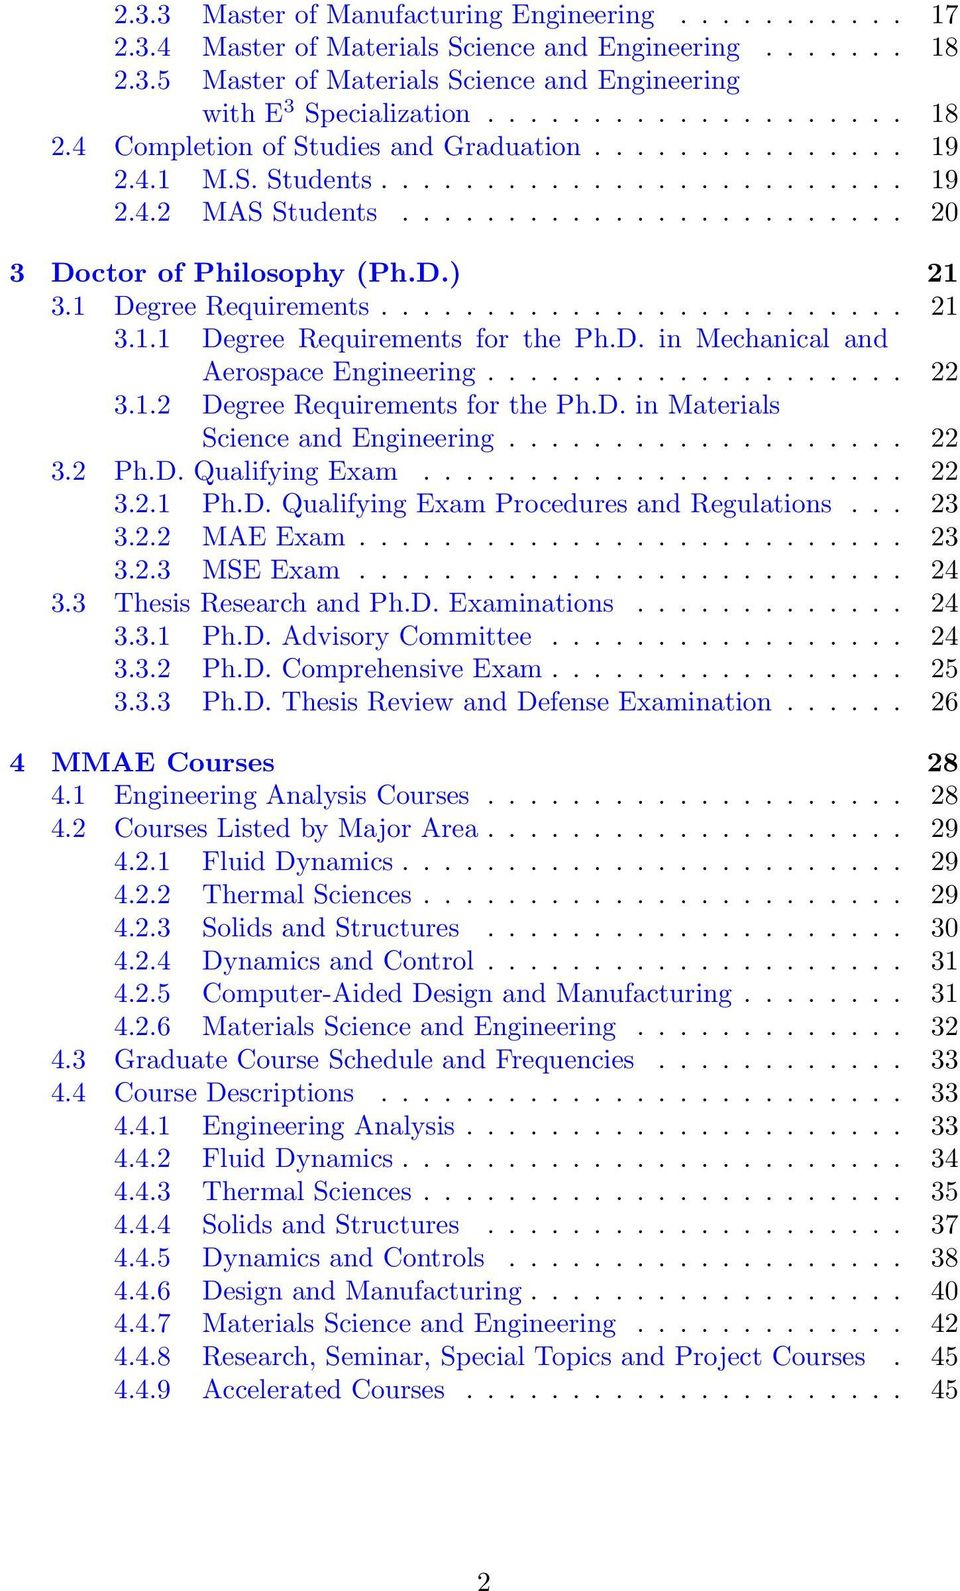 D. in Mechanical and Aerospace Engineering.................... 22 3.1.2 Degree Requirements for the Ph.D. in Materials Science and Engineering................... 22 3.2 Ph.D. Qualifying Exam....................... 22 3.2.1 Ph.